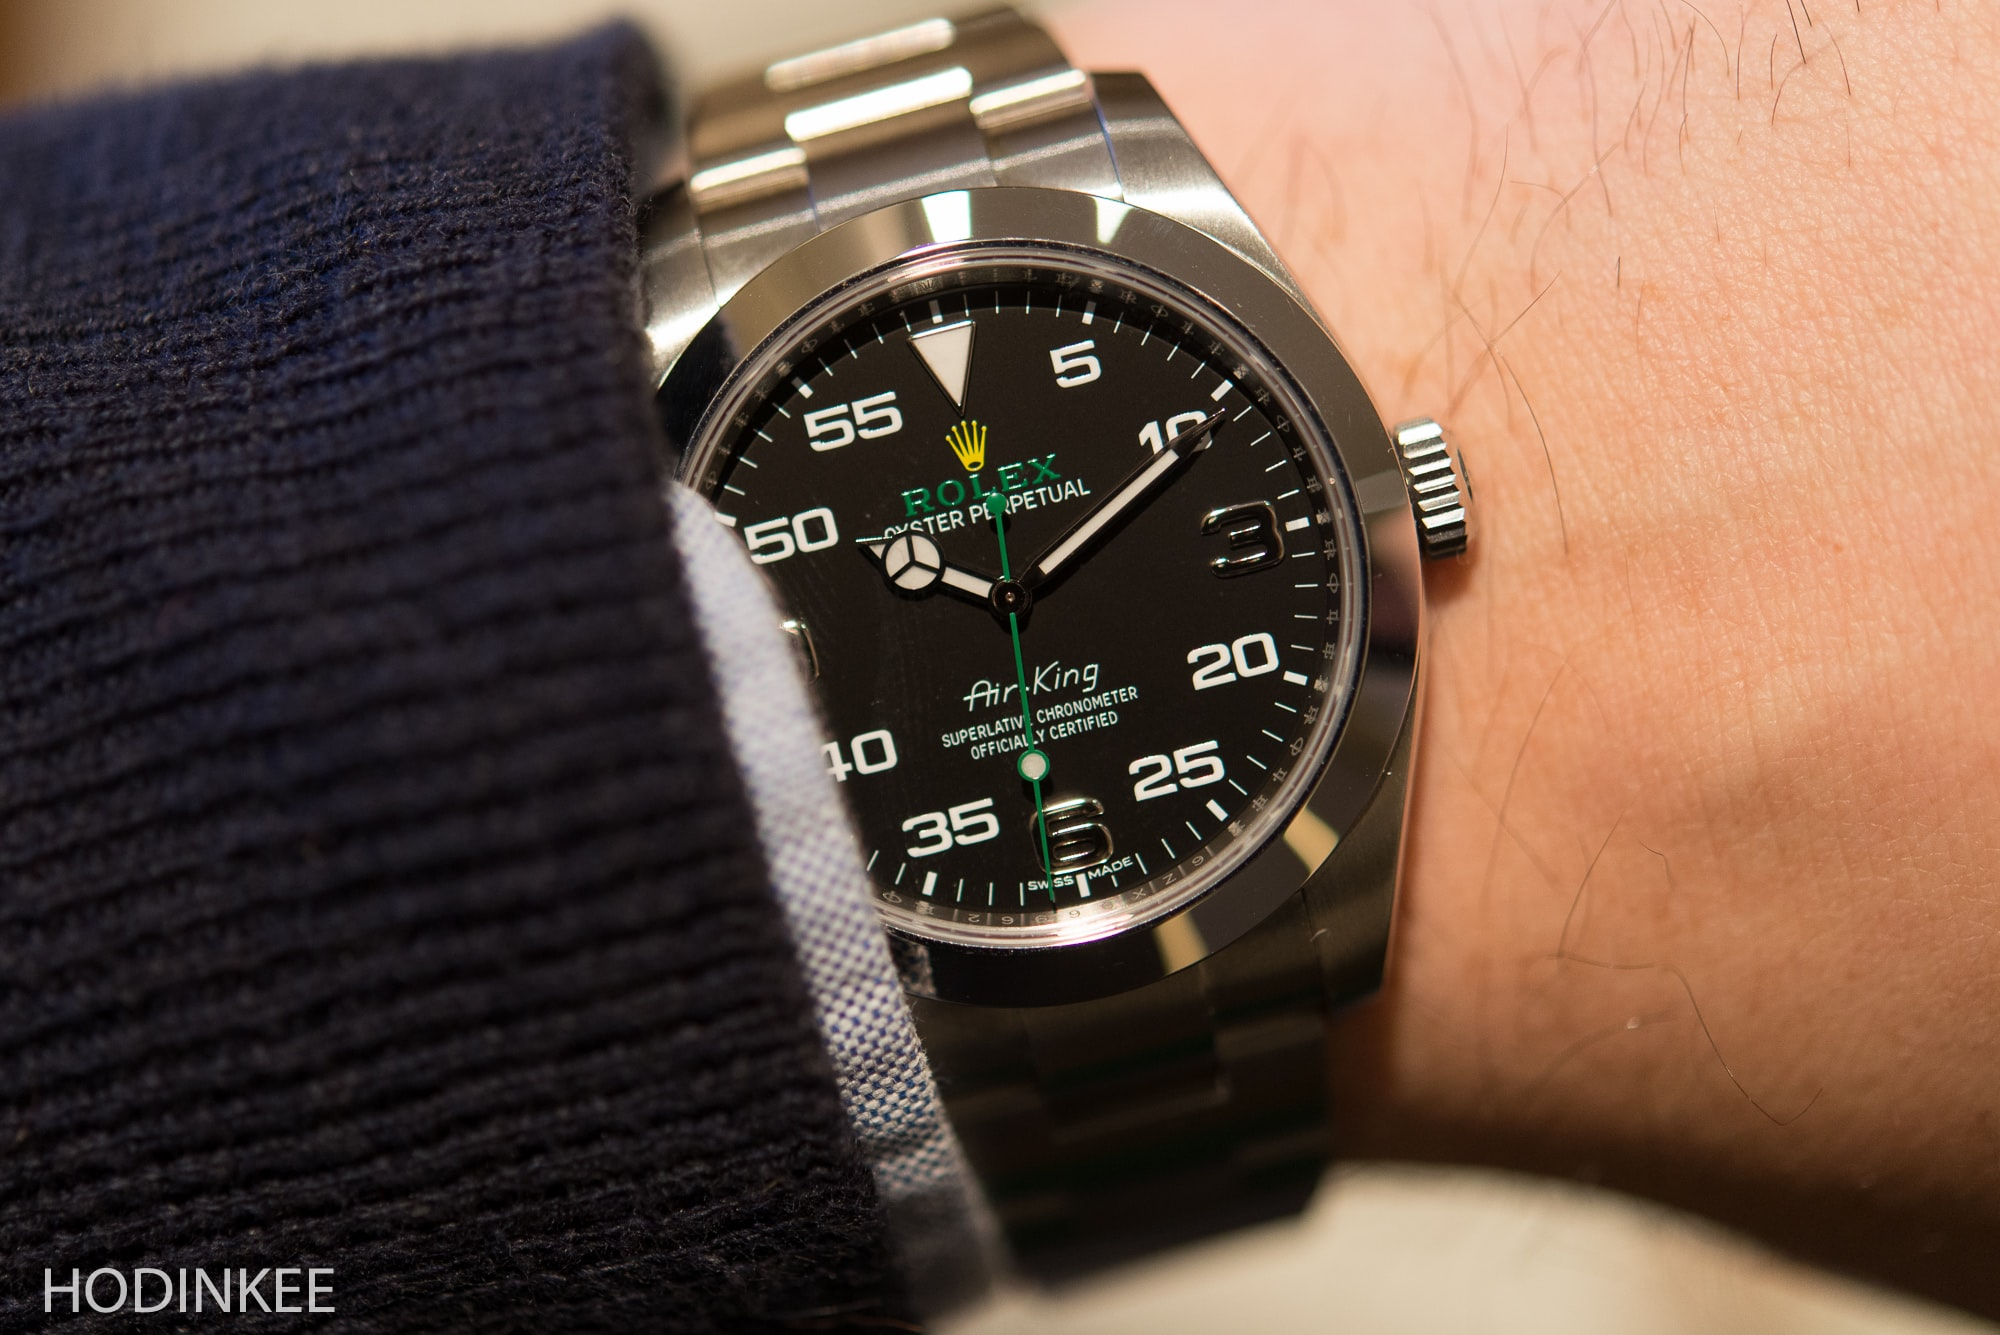 The Year In Review: The Top 20 Most Popular HODINKEE Posts Of 2016 The Year In Review: The Top 20 Most Popular HODINKEE Posts Of 2016 RolexAirKing 5